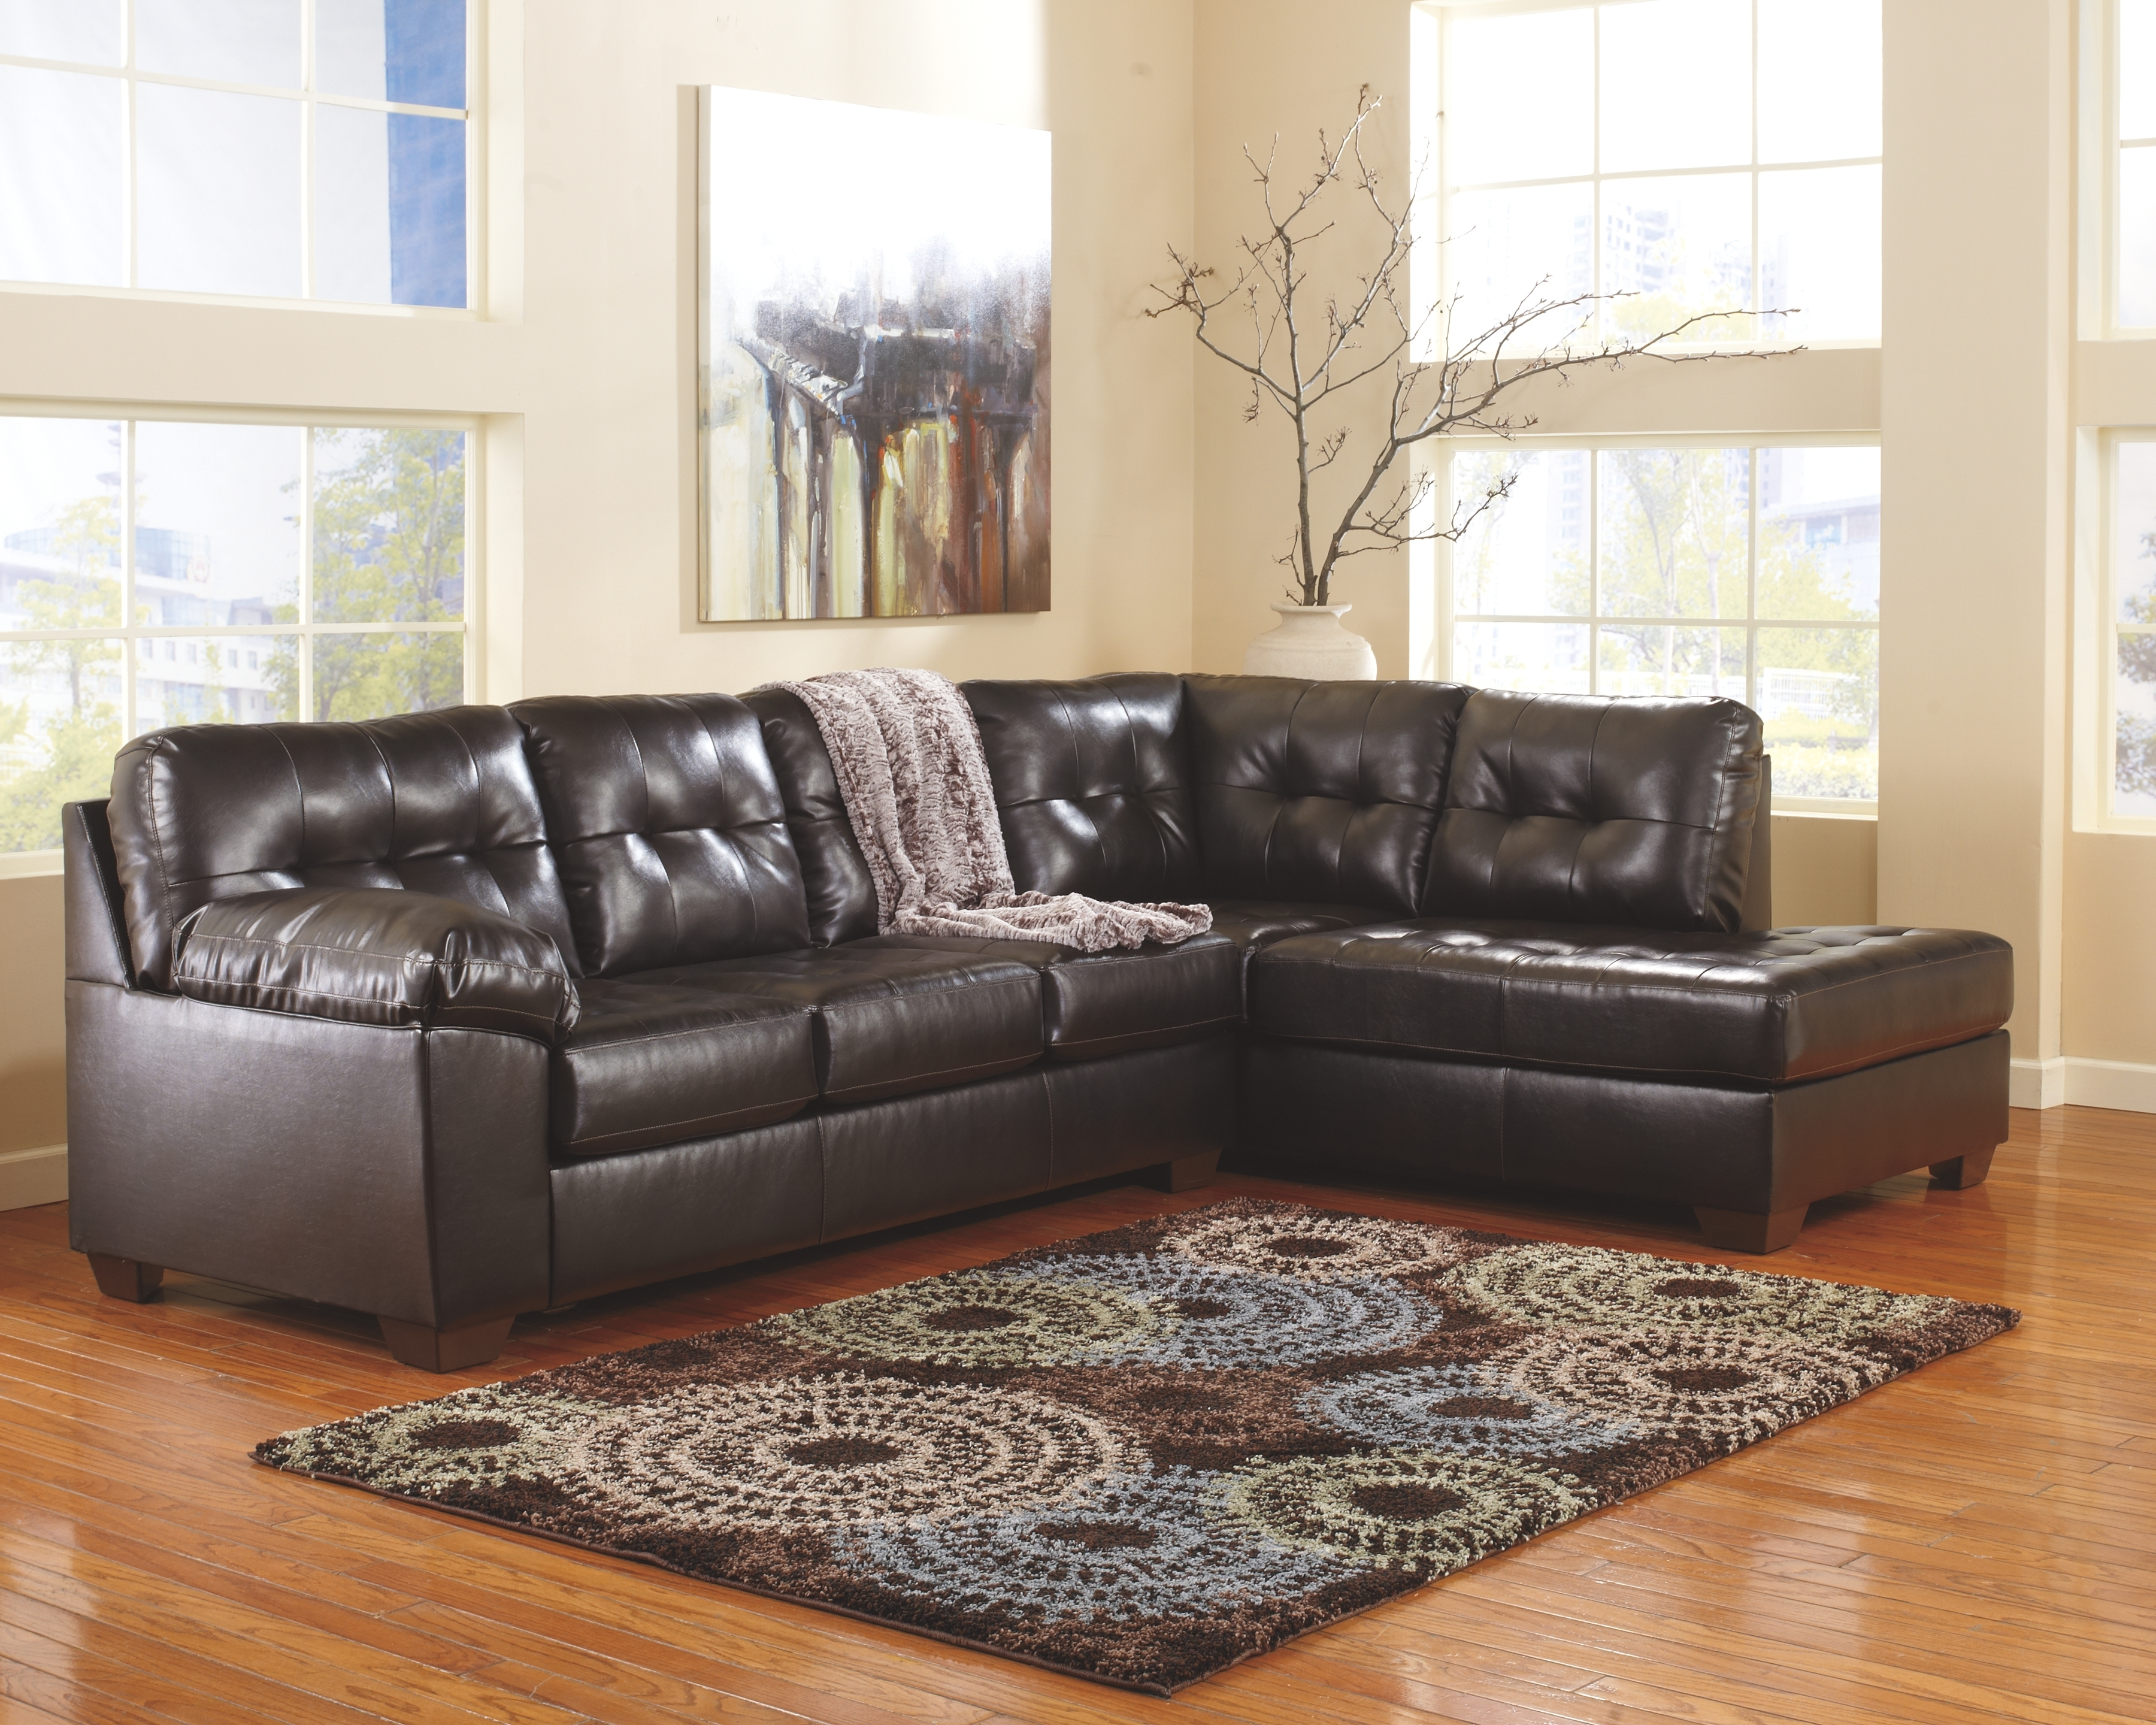 Alliston 2 Piece Sectional, Chocolate | Products | Pinterest | Products For Marissa Ii 3 Piece Sectionals (Image 1 of 25)